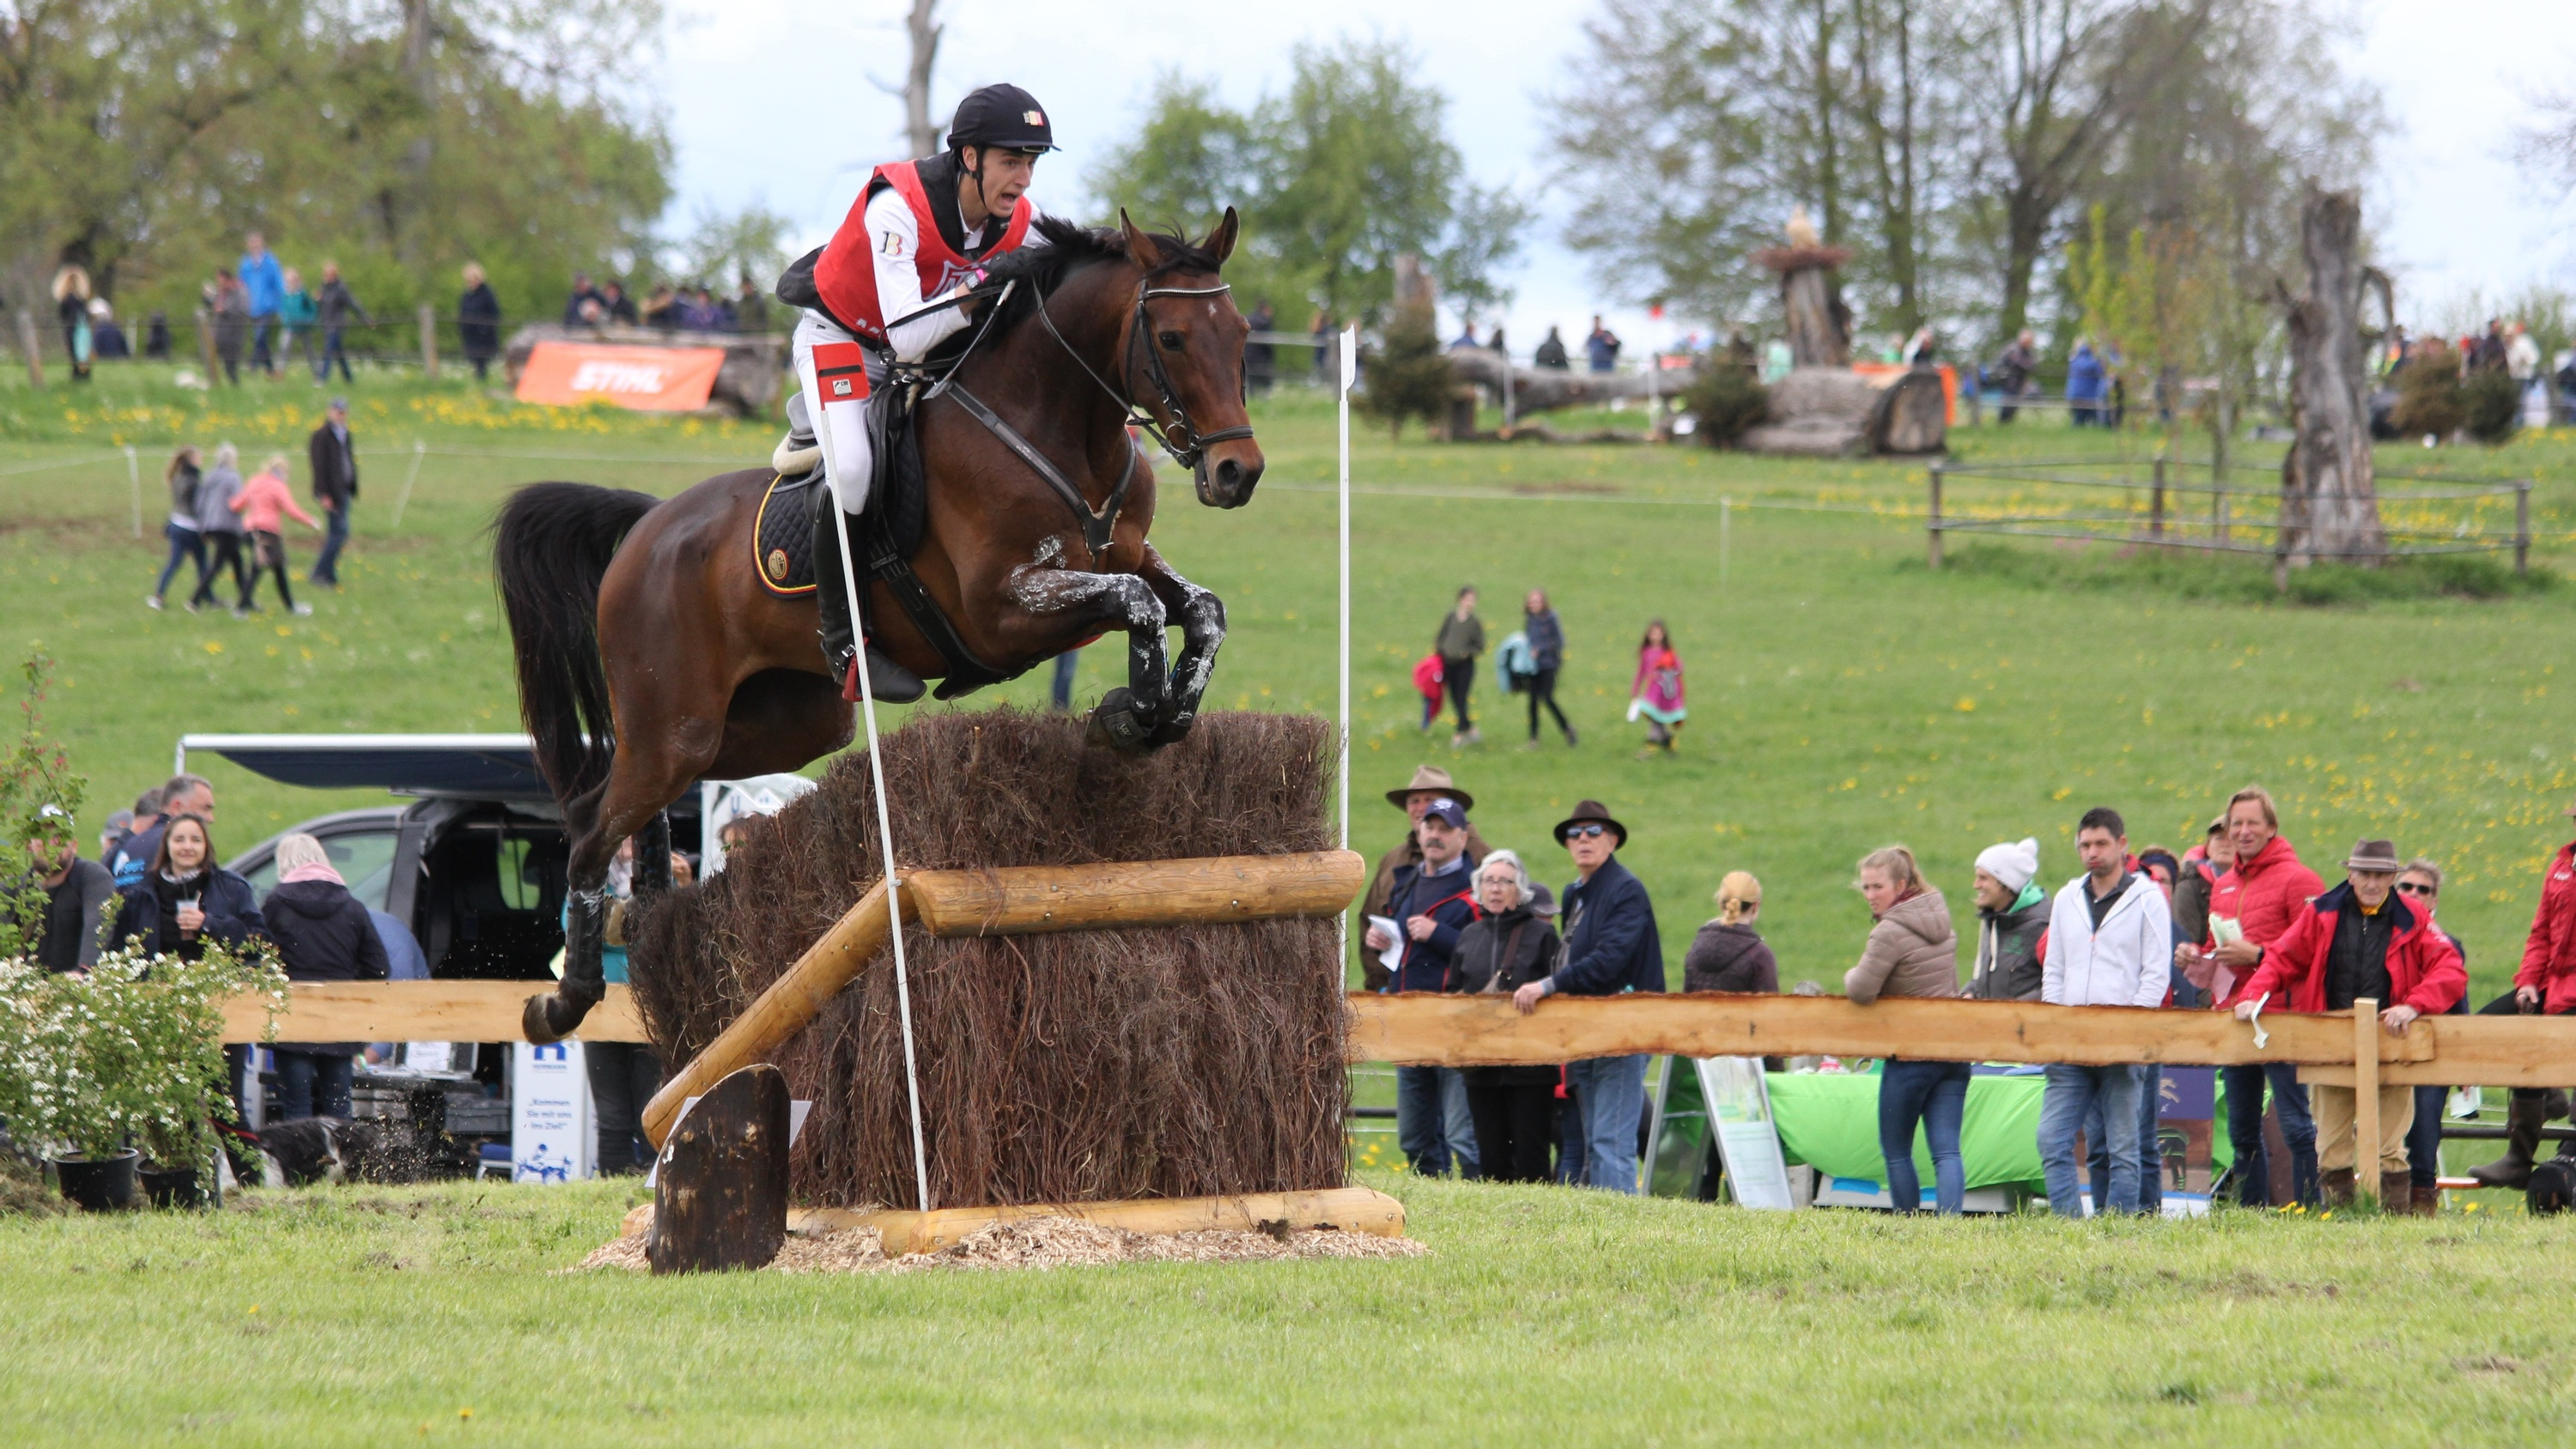 Marbach International Eventing 2022 4*DR - English Commentary